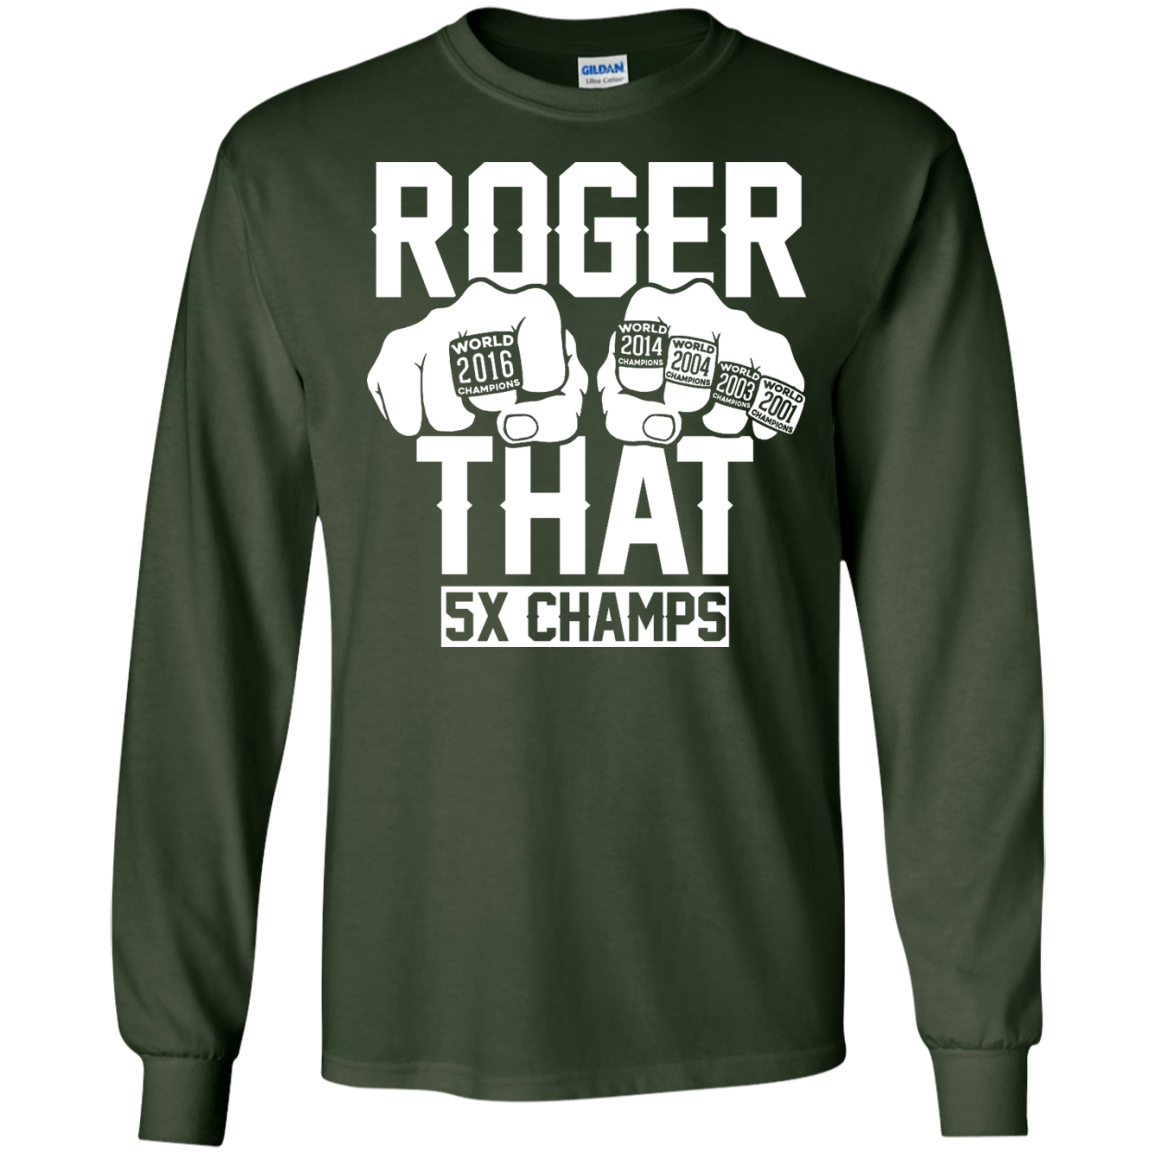 image 690px Roger That 5x Champs Brady Rrolls Goodell T Shirts